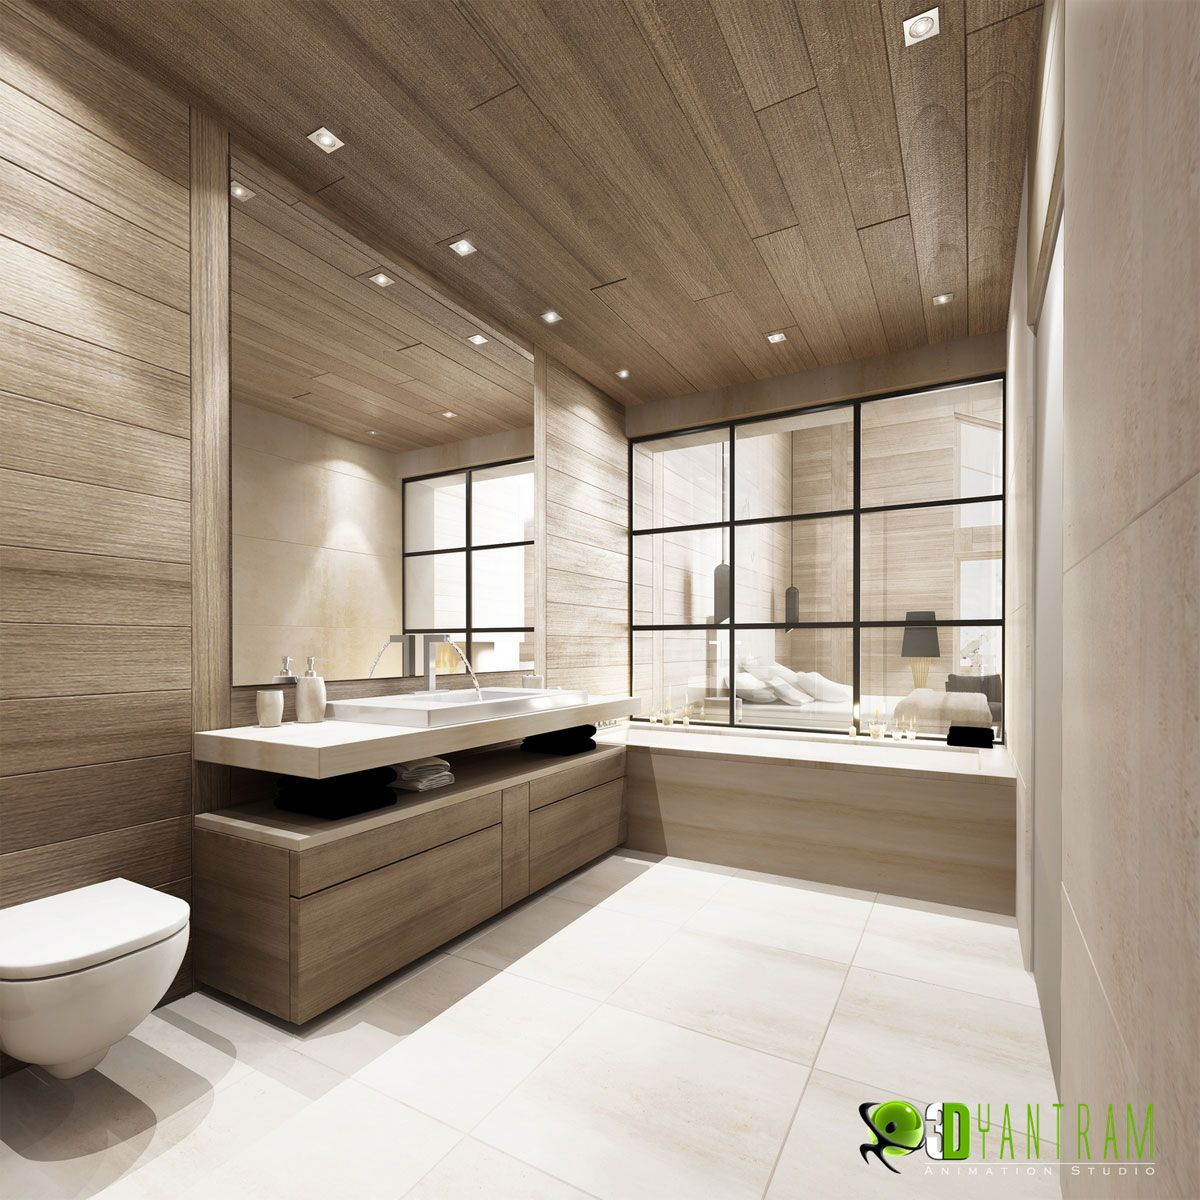 Interior 3d Rendering Cgi Design Animation Bathroom Interior Design Interior Design Software Contemporary Bedroom Design